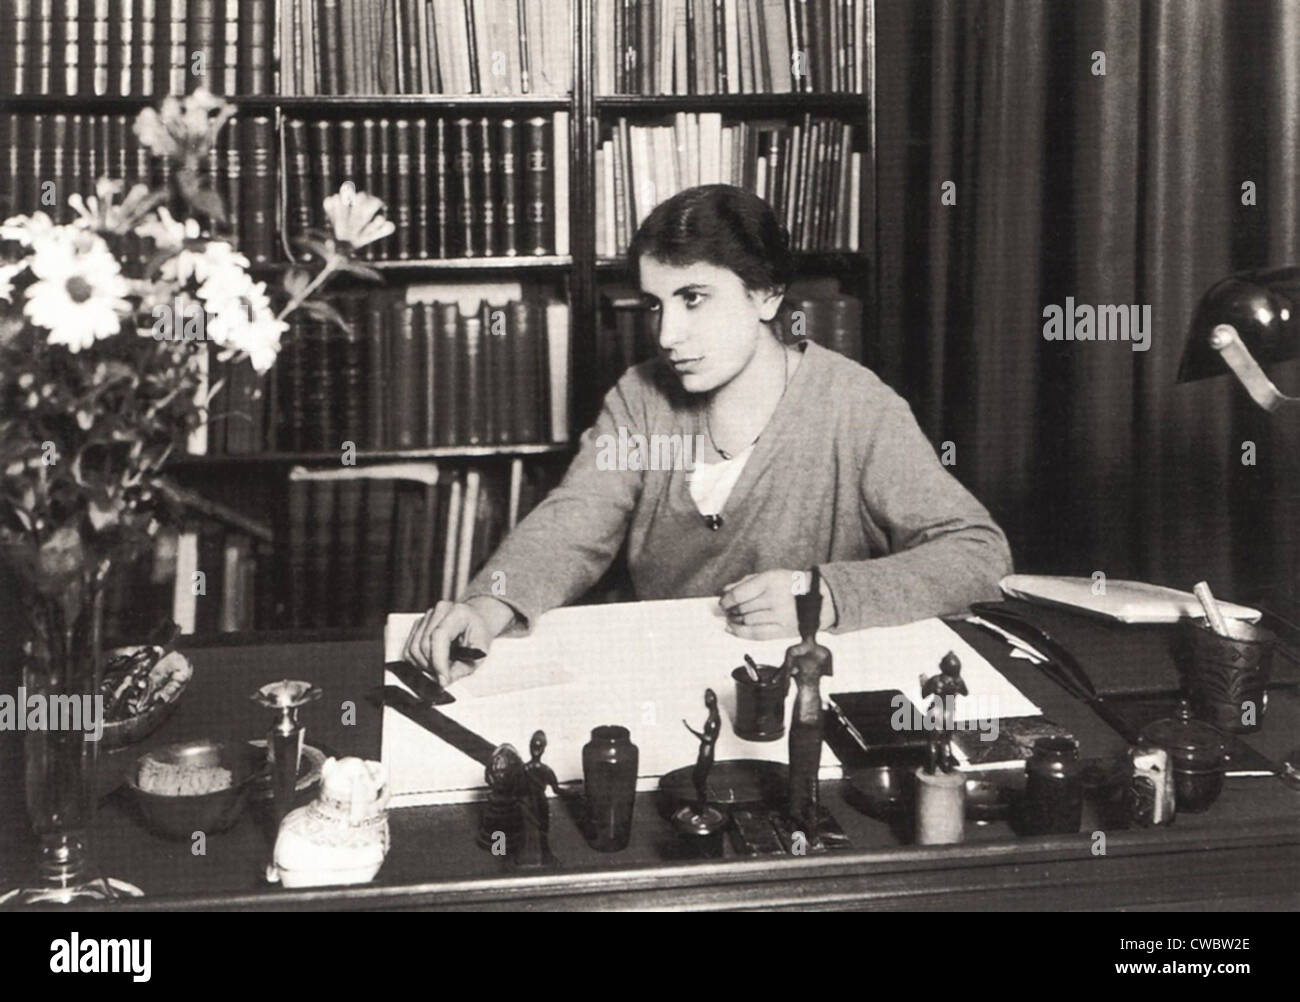 Anna Freud (1895-1982), youngest daughter of Sigmund Freud and founder of child psychoanalysis. Ca. 1920s. - Stock Image